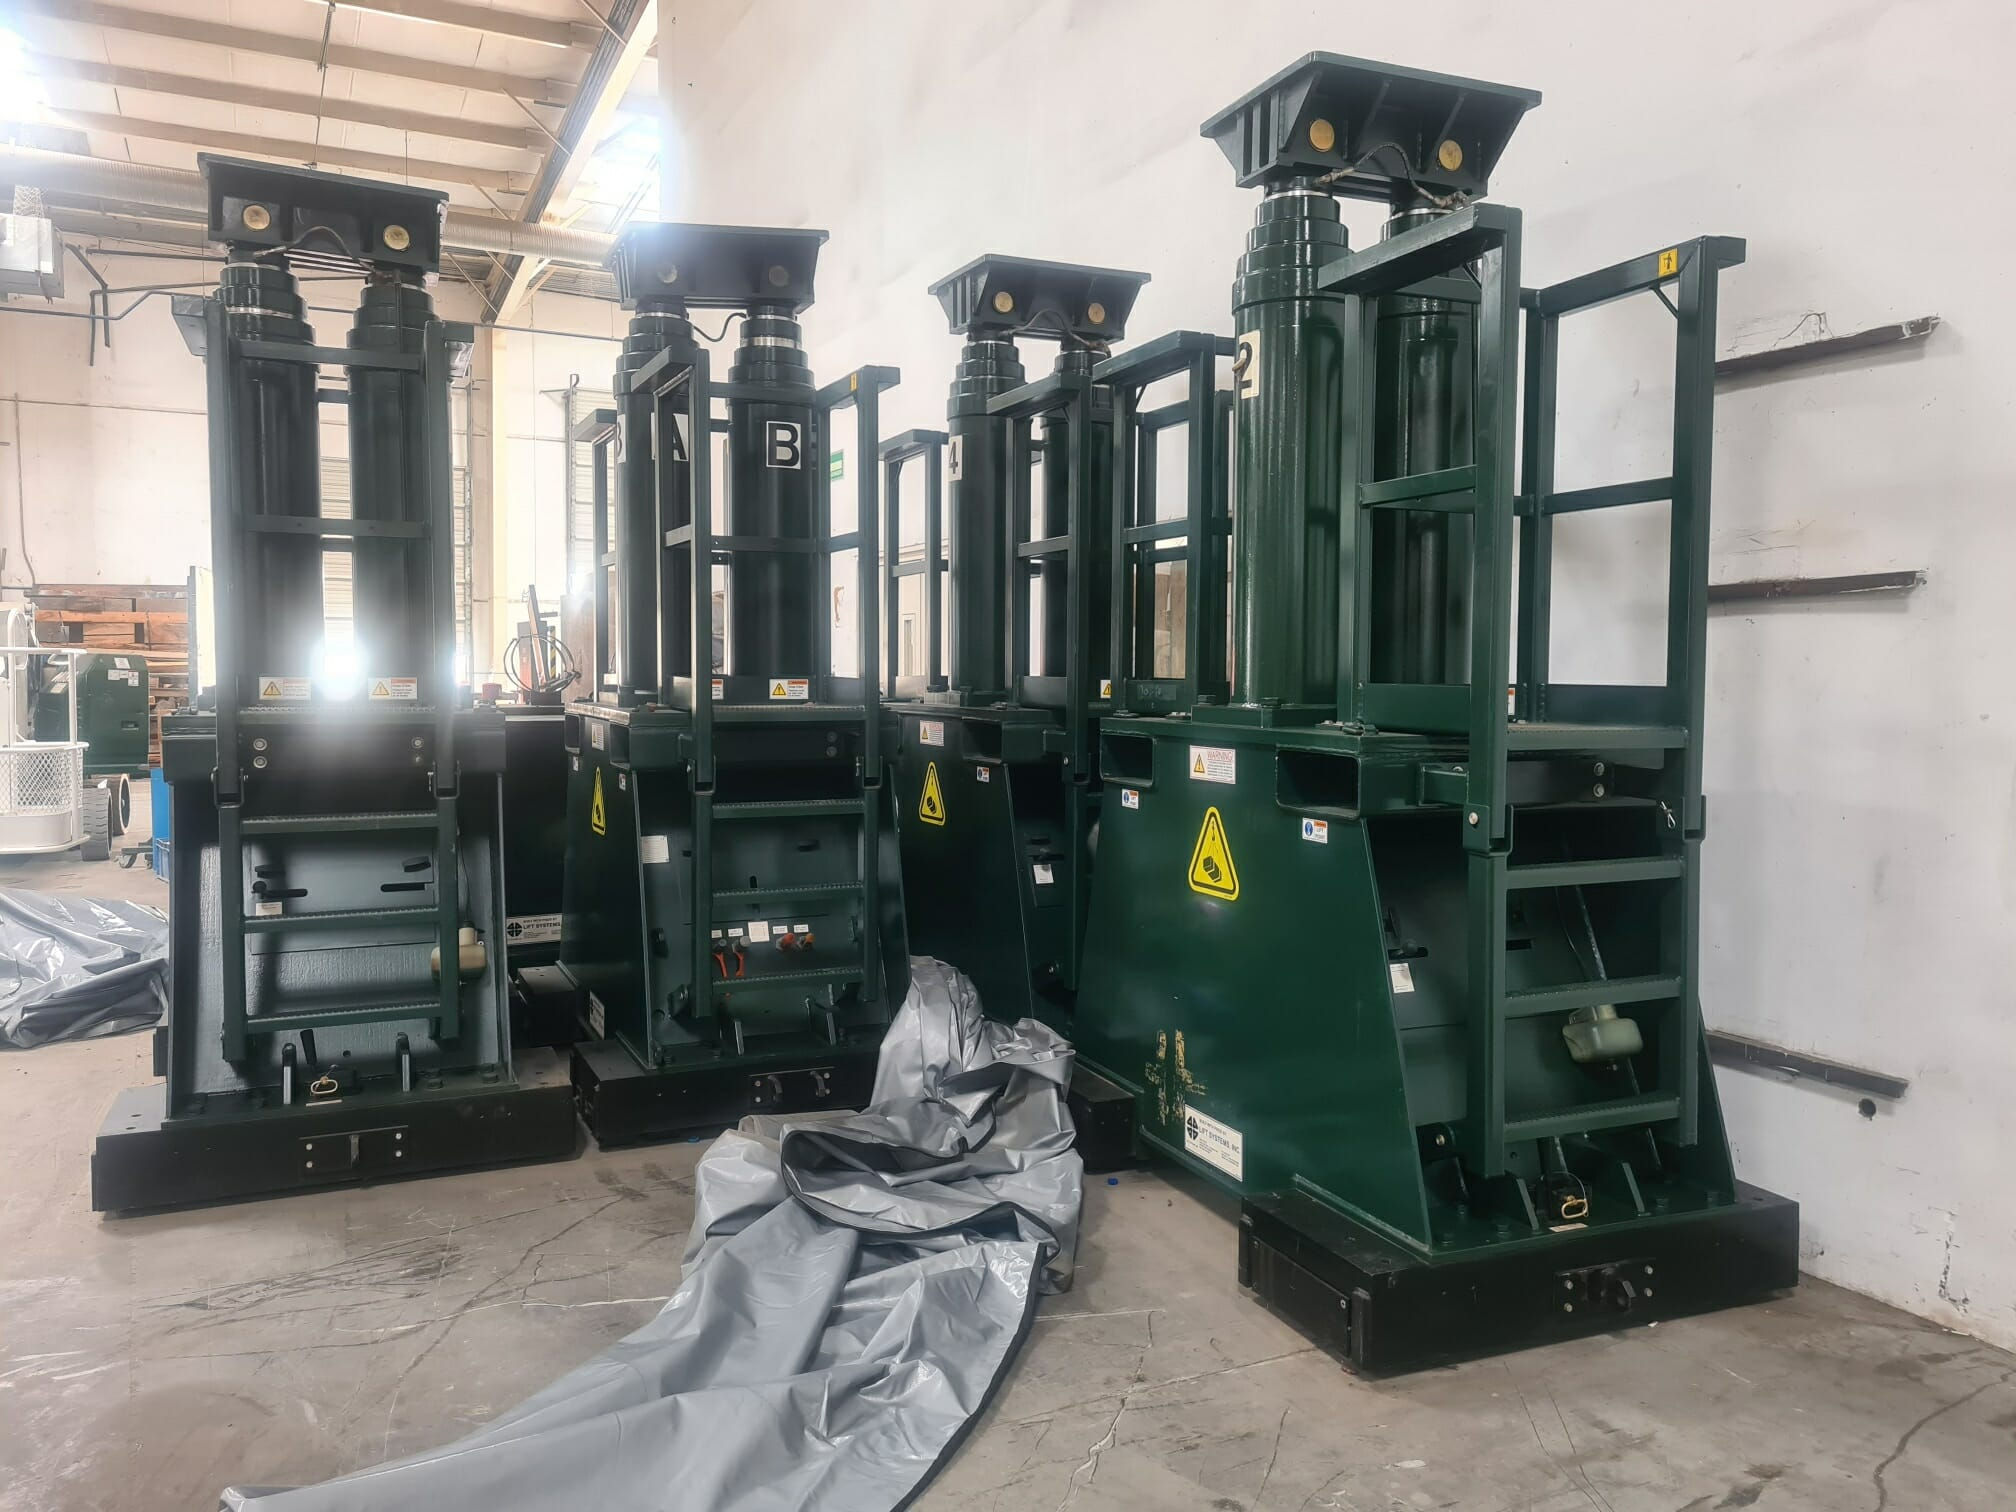 800 Ton Lift Systems Gantry For Sale